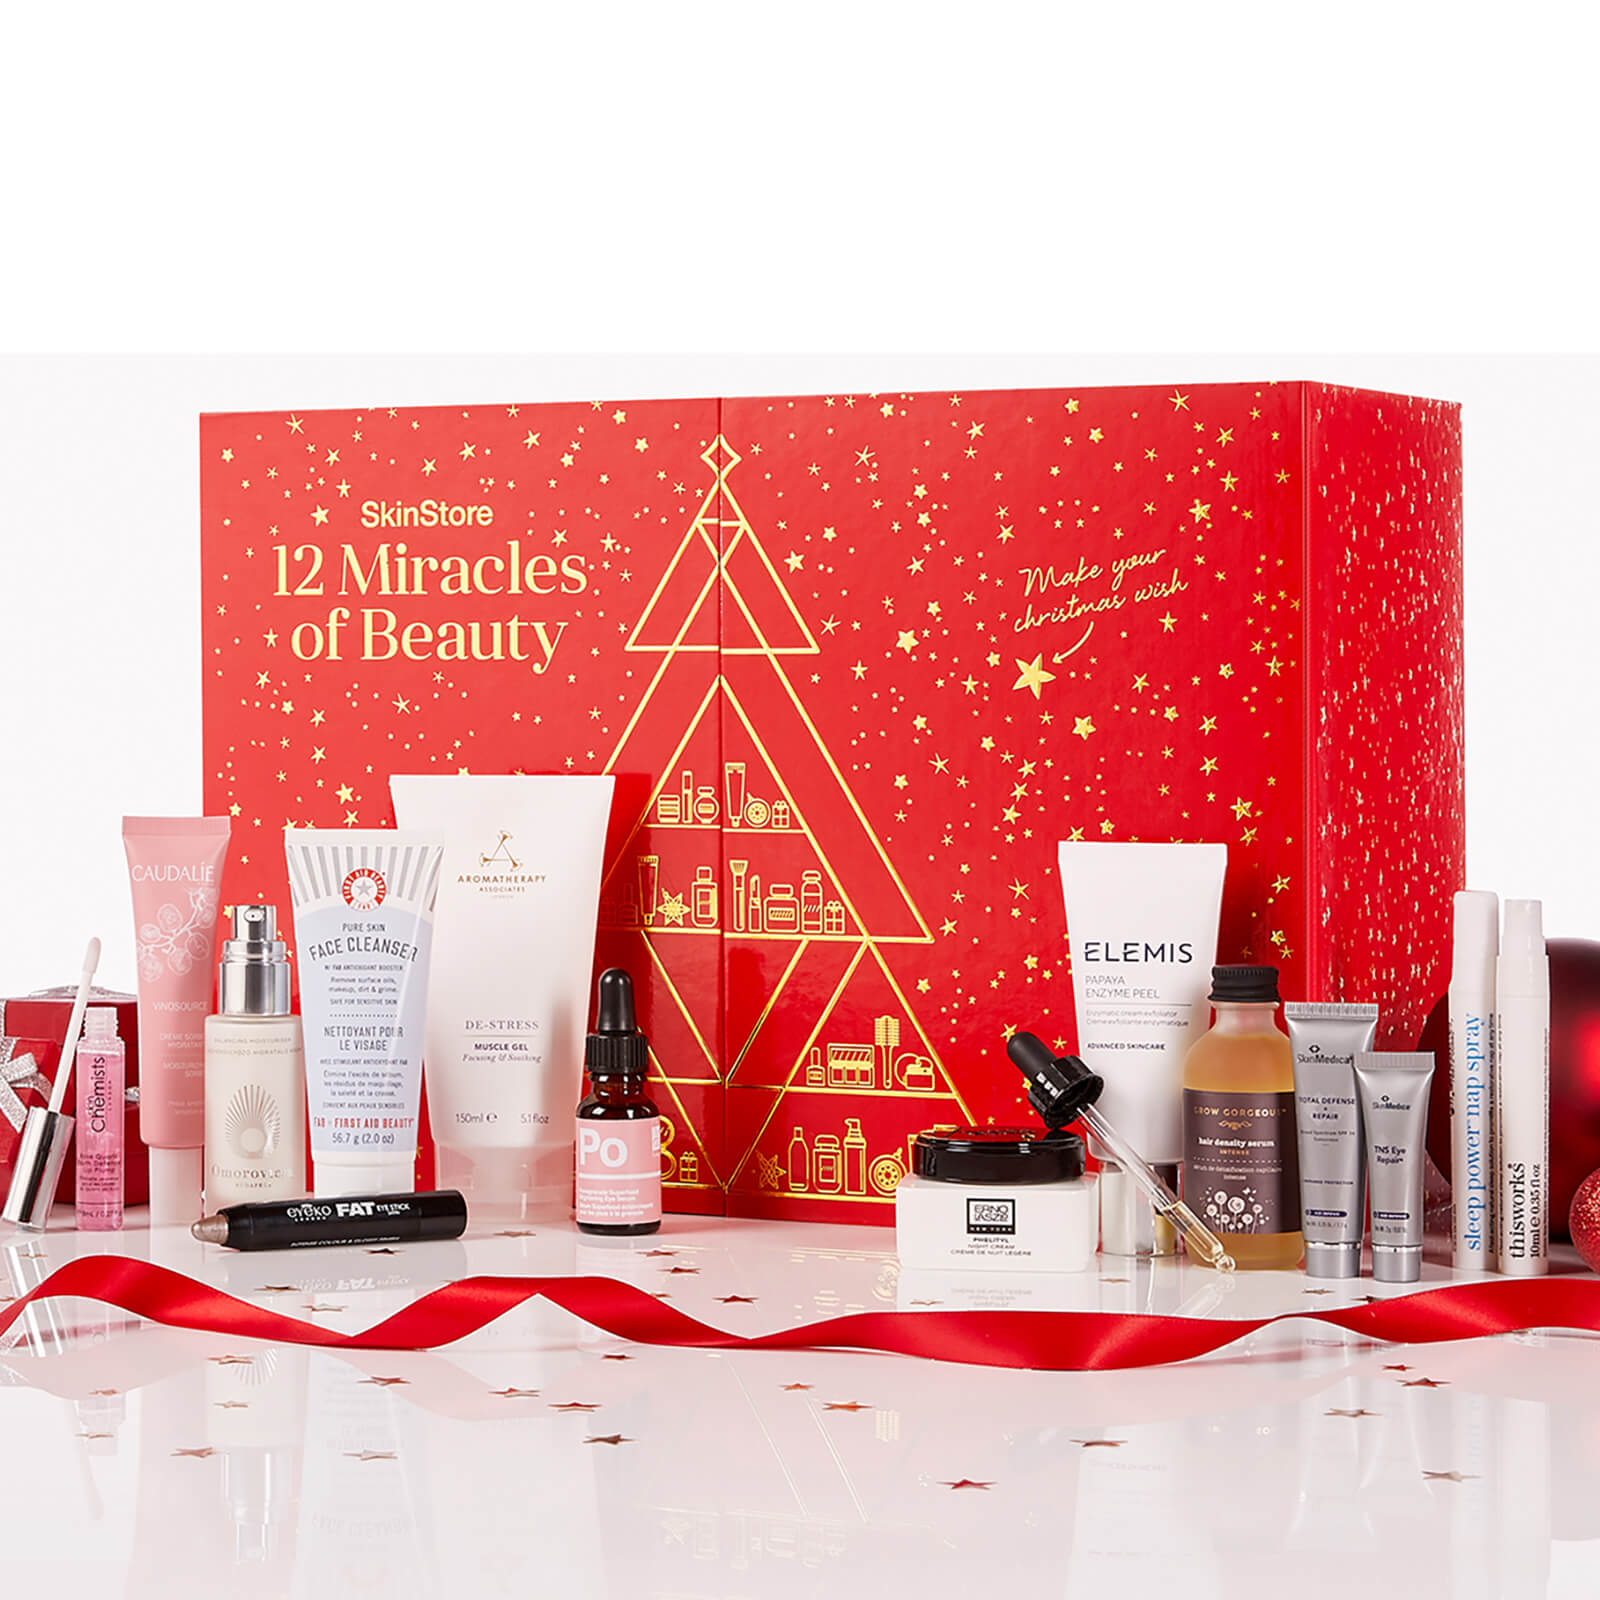 Beauty Advent Calendar.Skinstore S 12 Miracles Of Beauty Worth Over 340